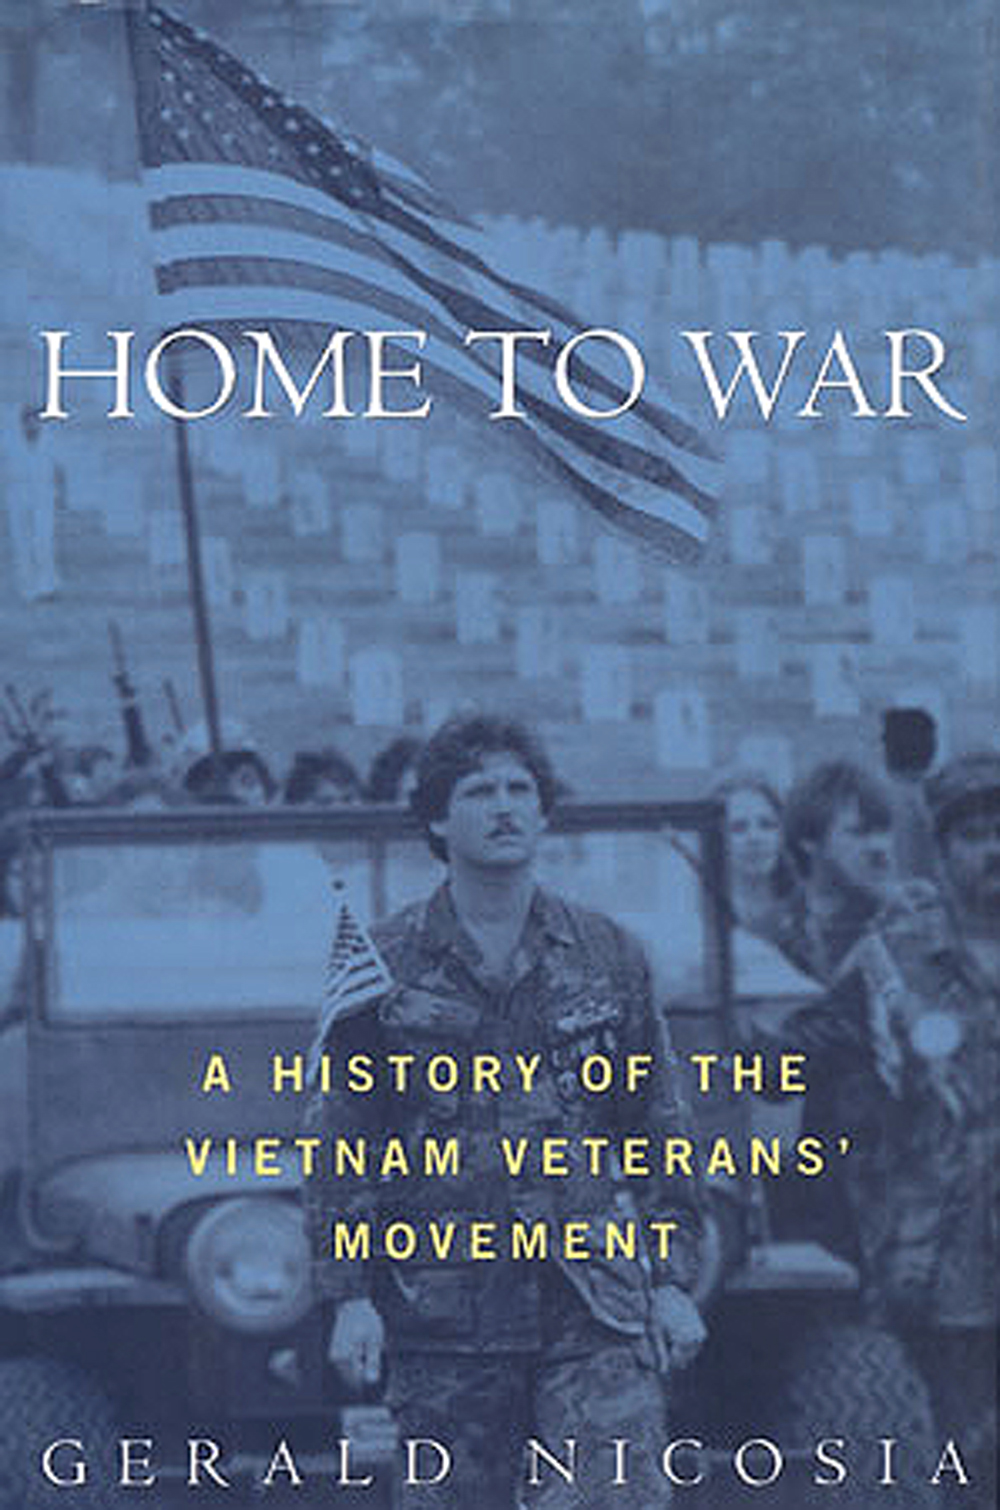 home_to_war